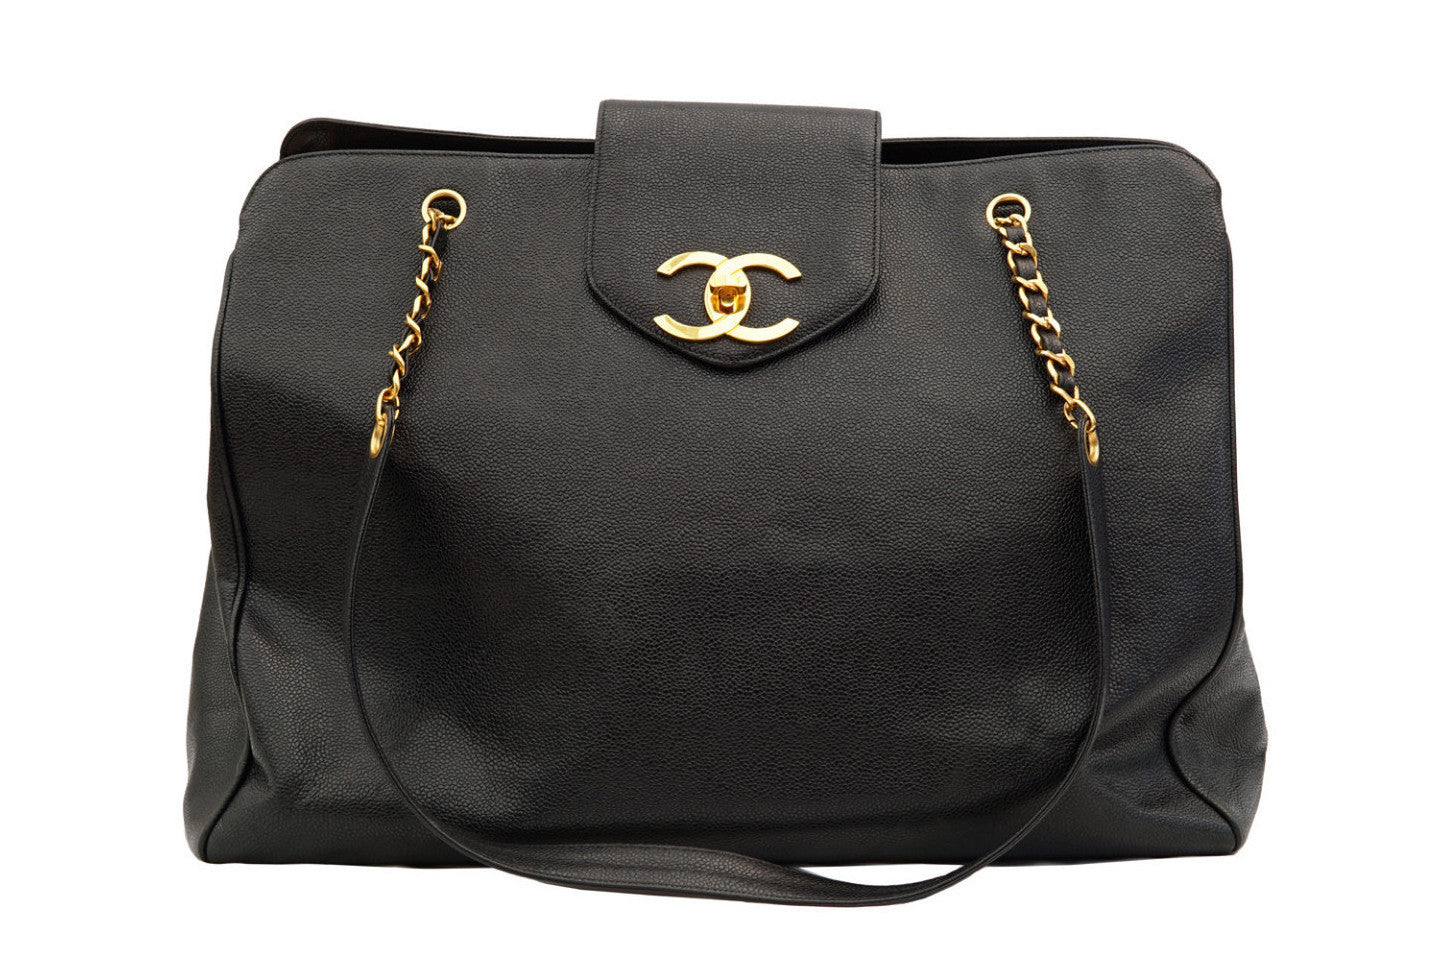 19a3964ec243 CHANEL VINTAGE OVERNIGHTER JUMBO XL BAG - Vintage District